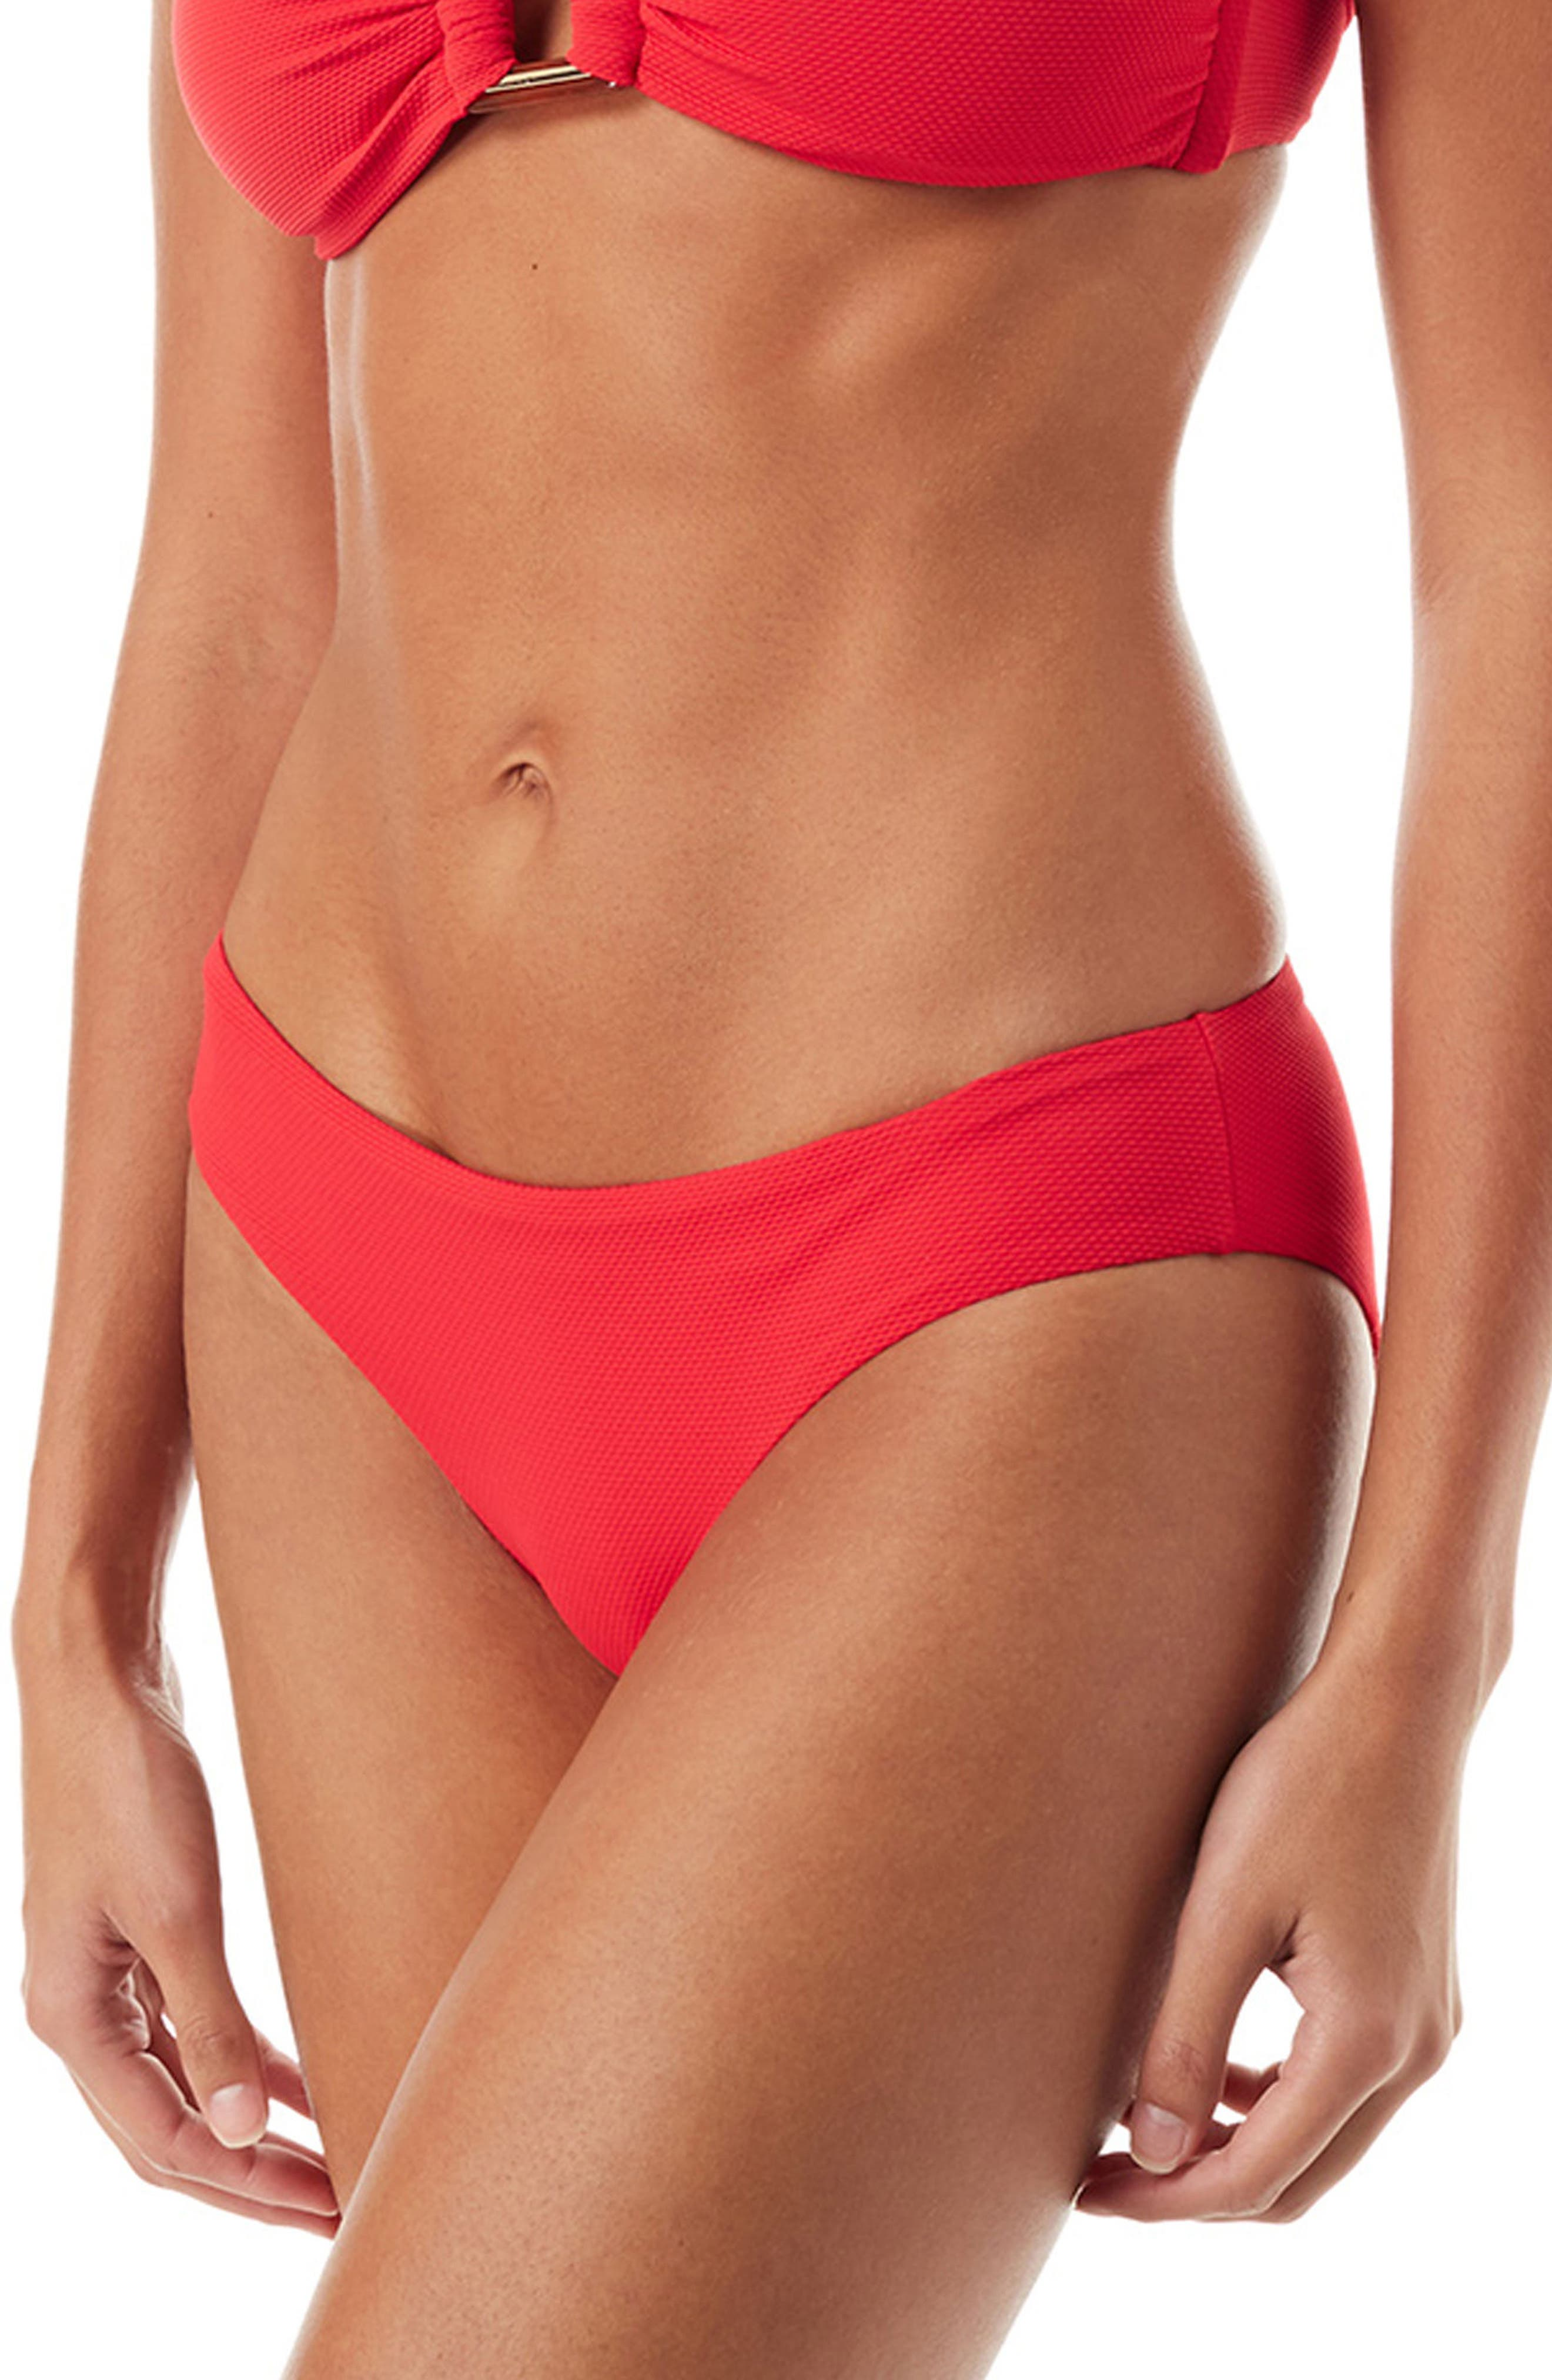 Angola Bikini Bottoms,                             Main thumbnail 1, color,                             PIQUE RED